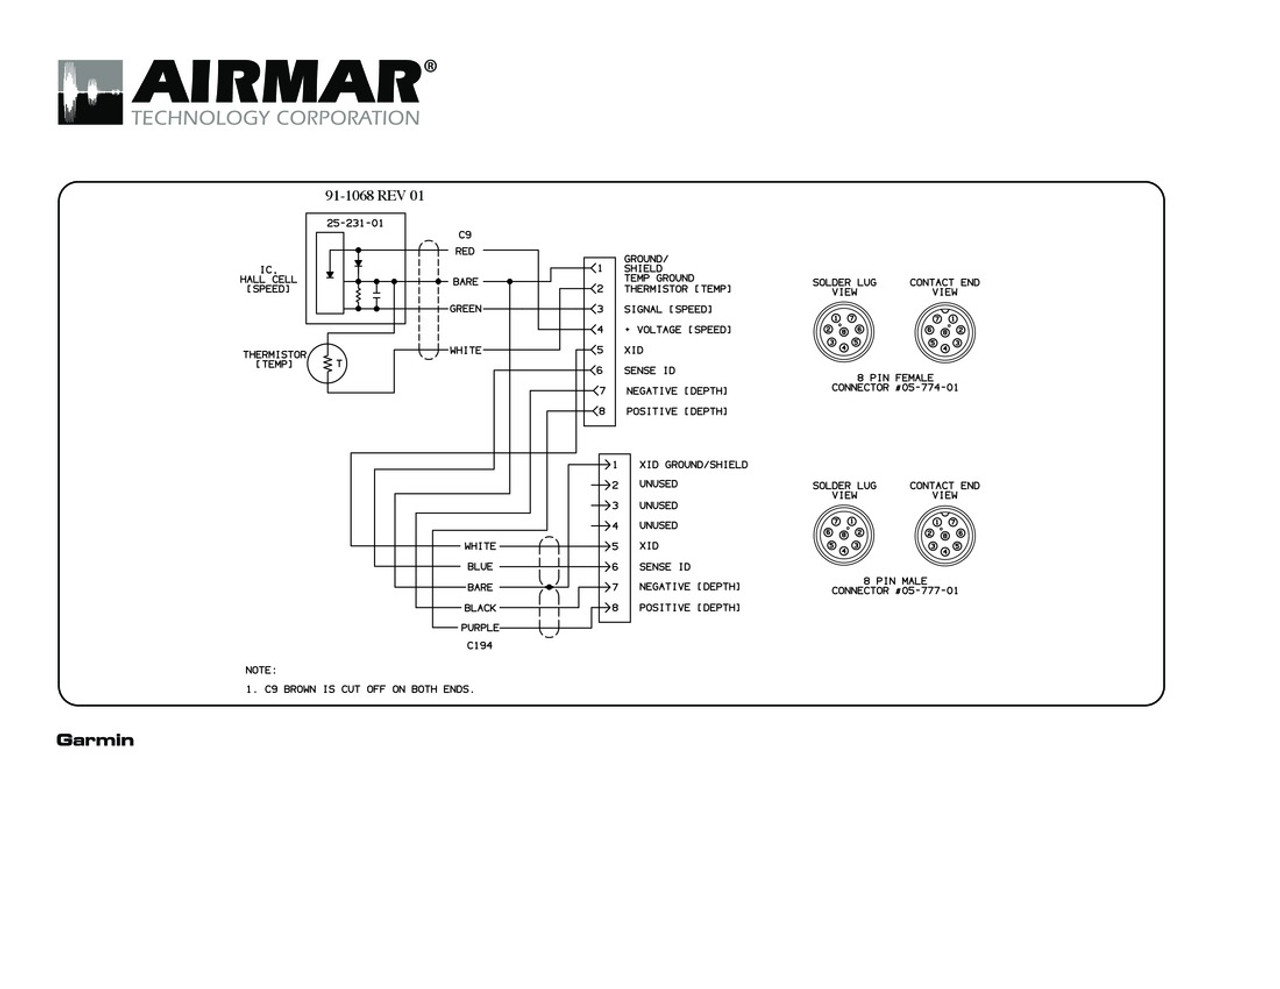 Garmin Marine Wiring Diagram Schematics Toshiba Car Stereo Airmar St850 8 Pin St Blue Bottle Delphi 28173908 Radio